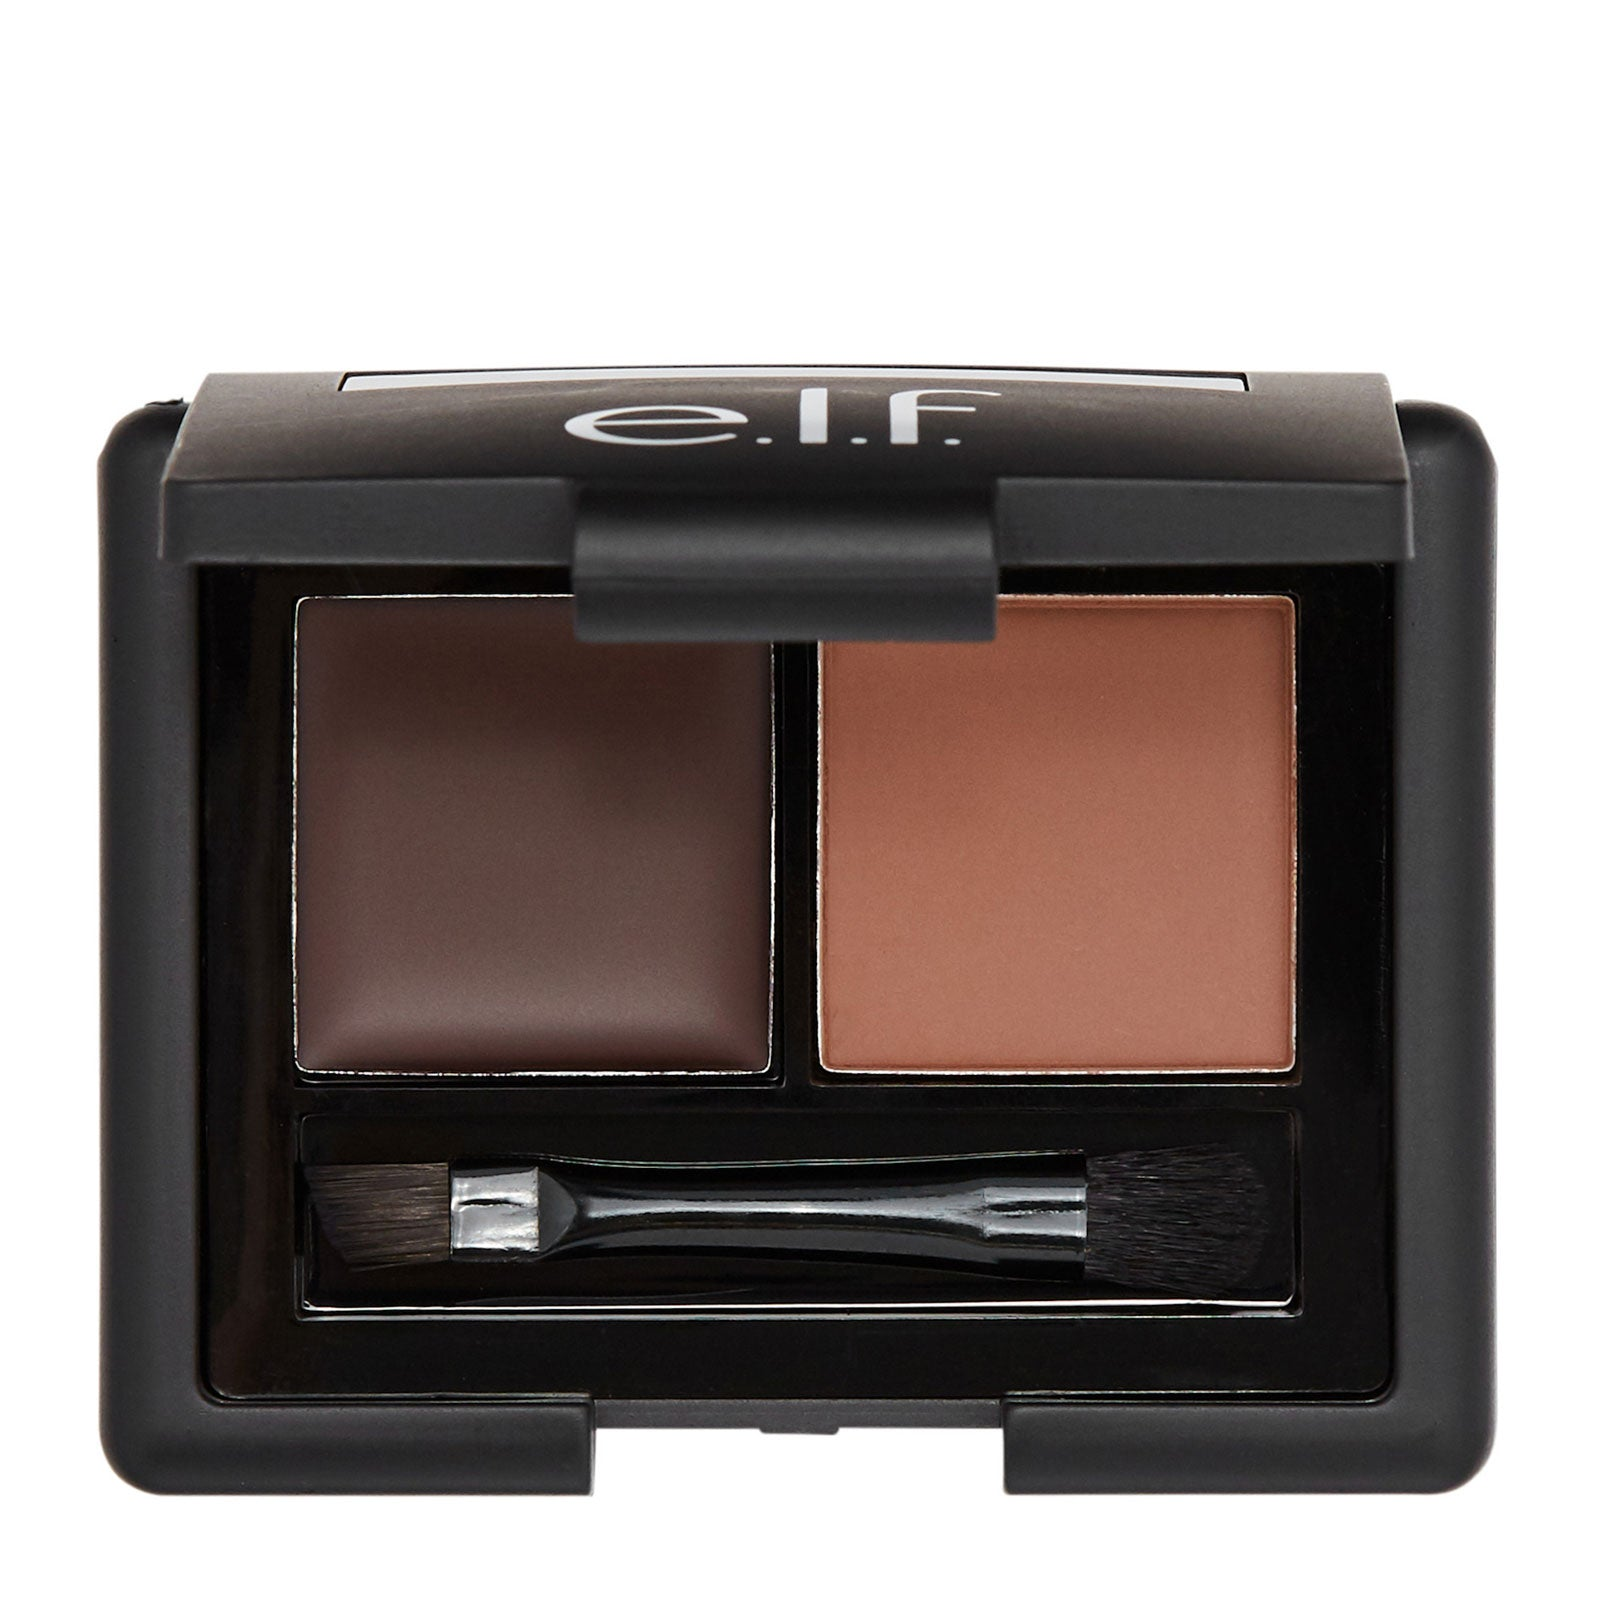 e.l.f. Eyebrow Kit 2.3g